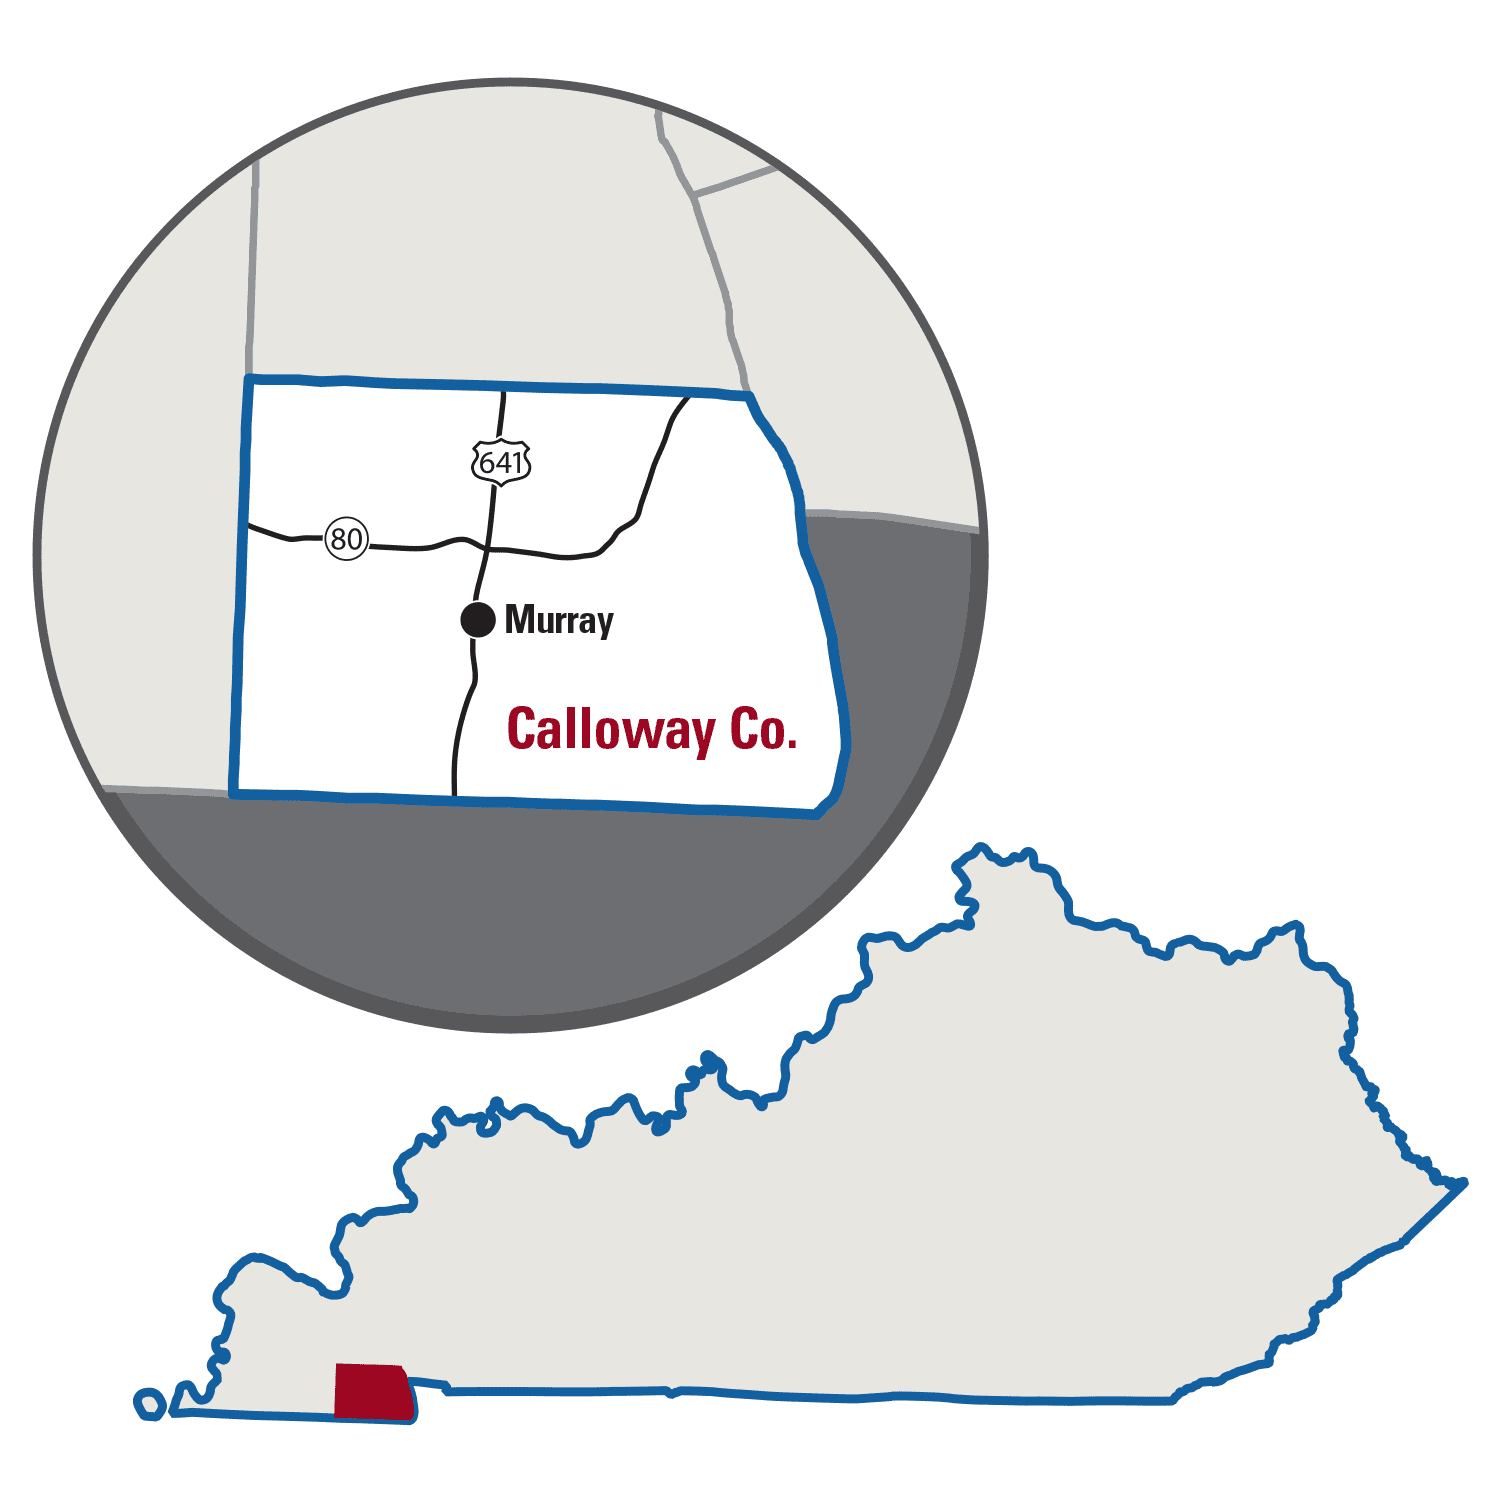 map_Calloway-Co_Murray.png